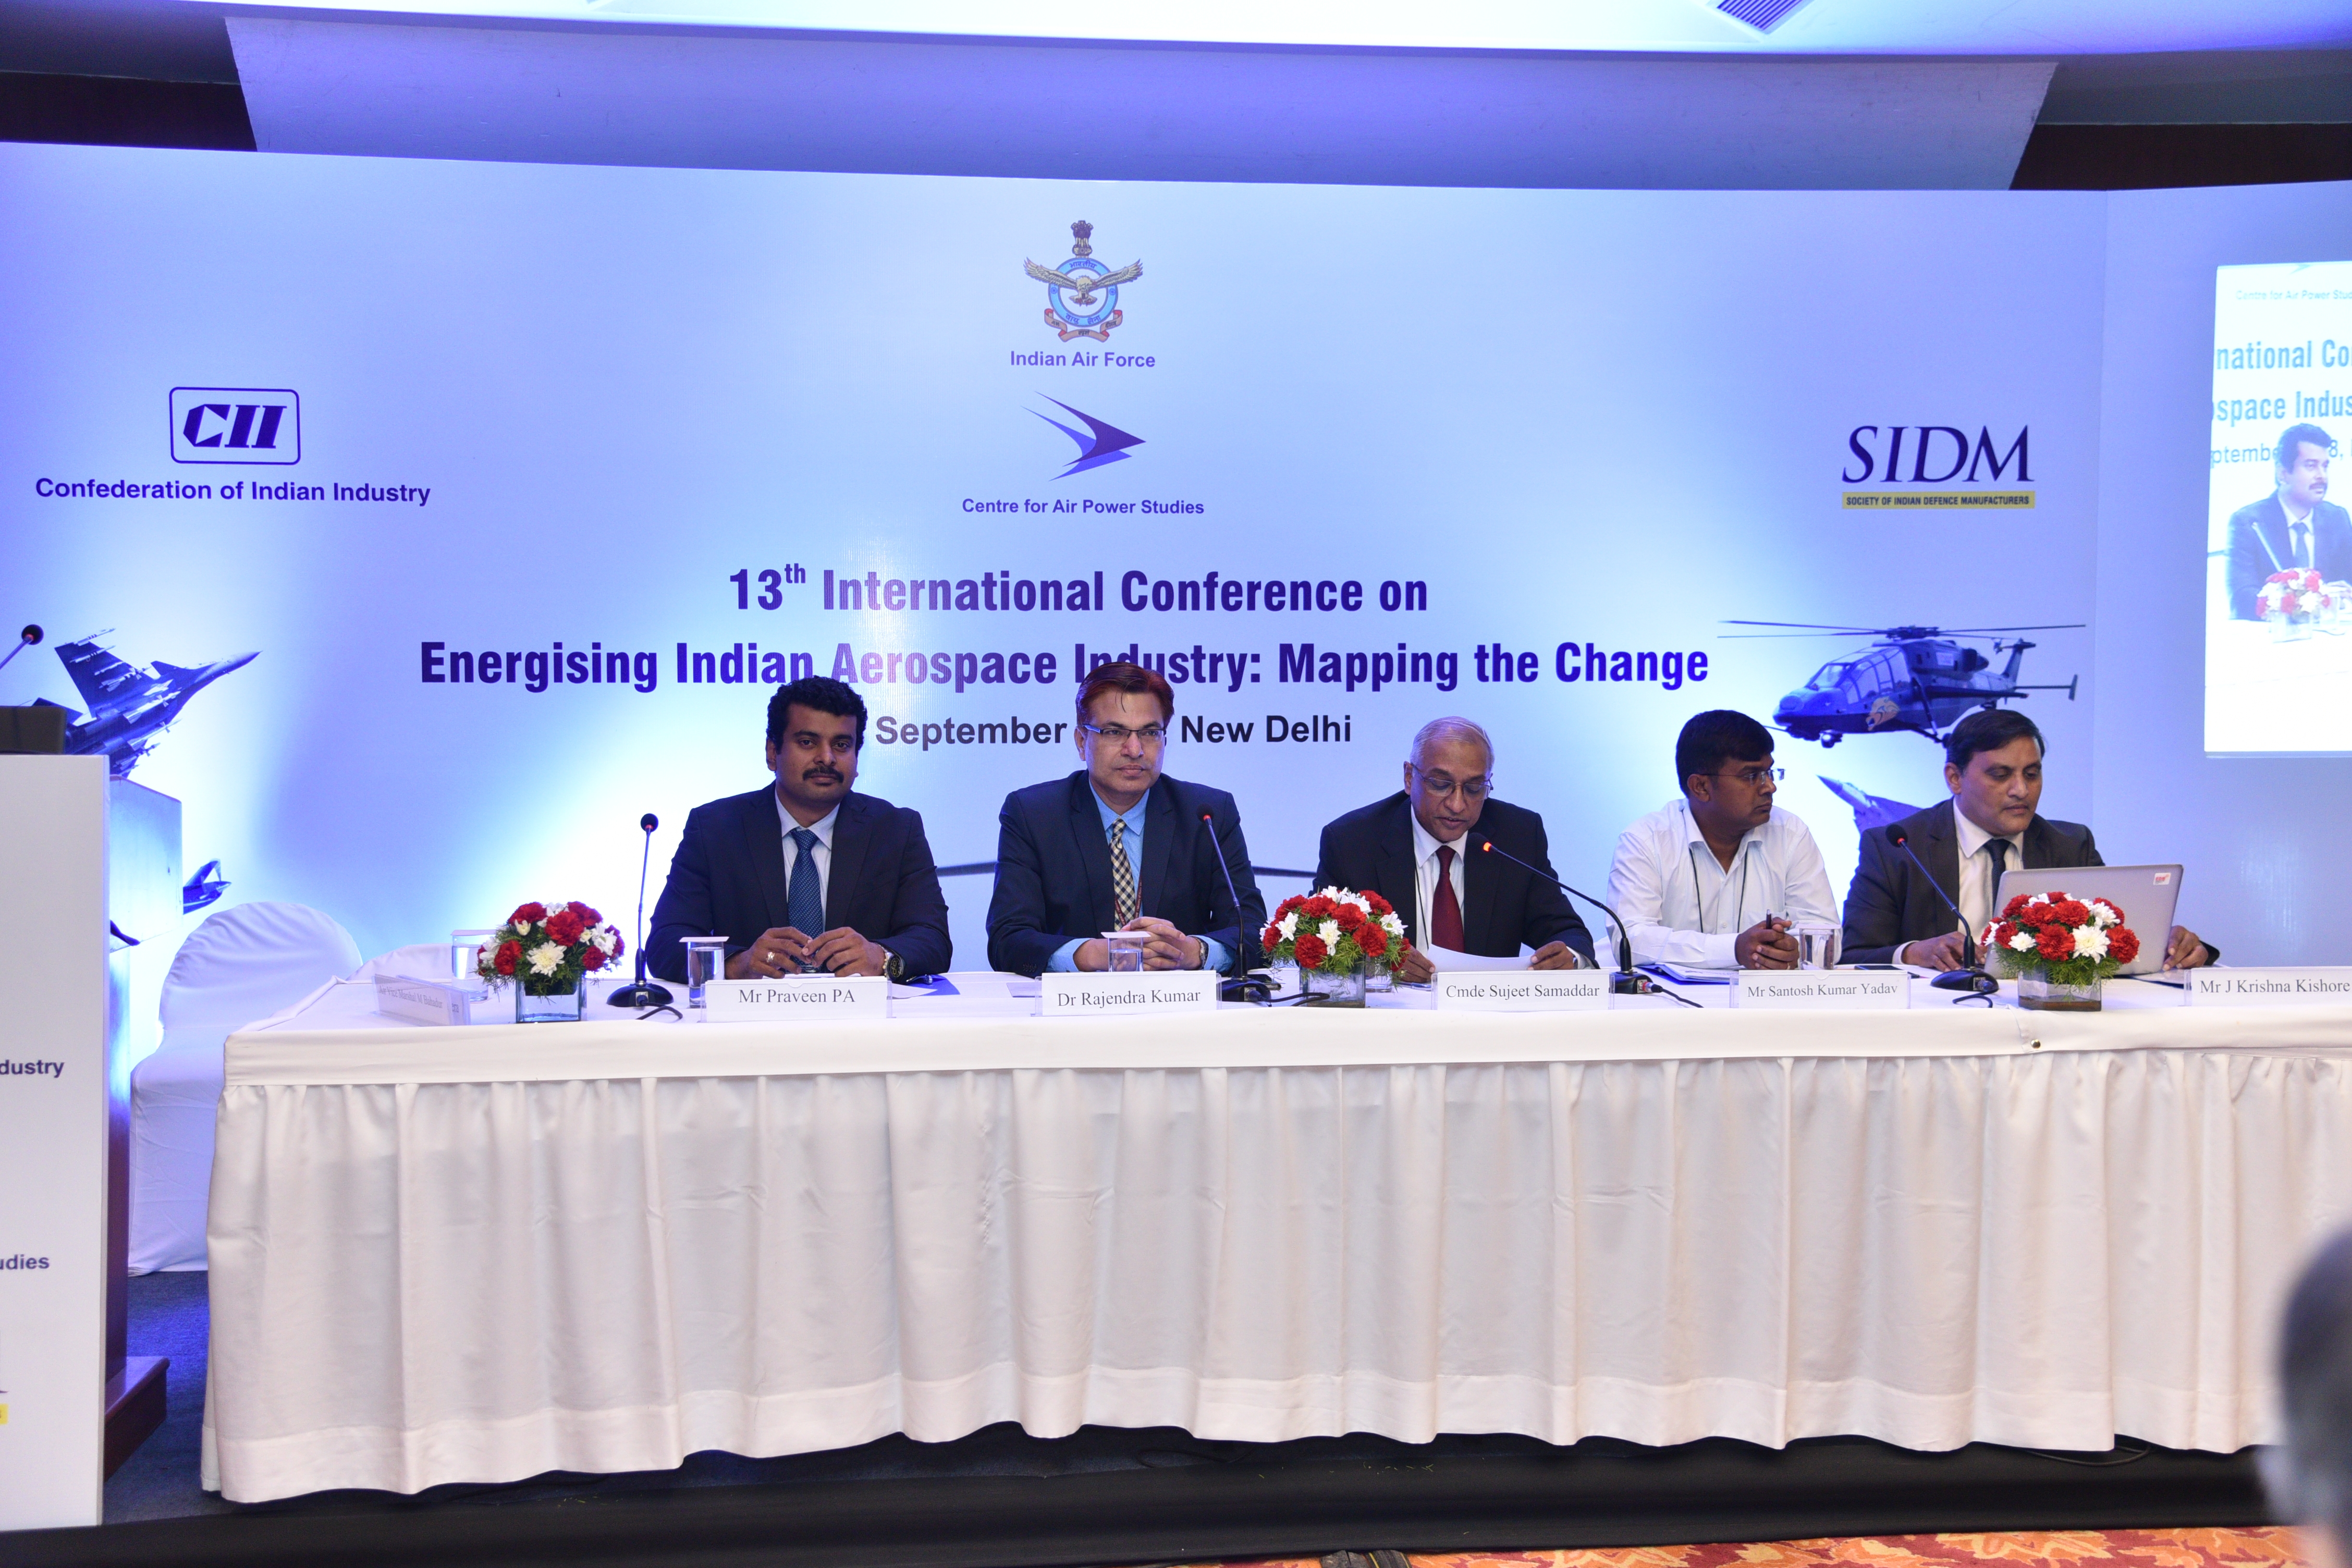 Panel Session 2 at the 13th International Conference on Energising Indian Aerospace Industry